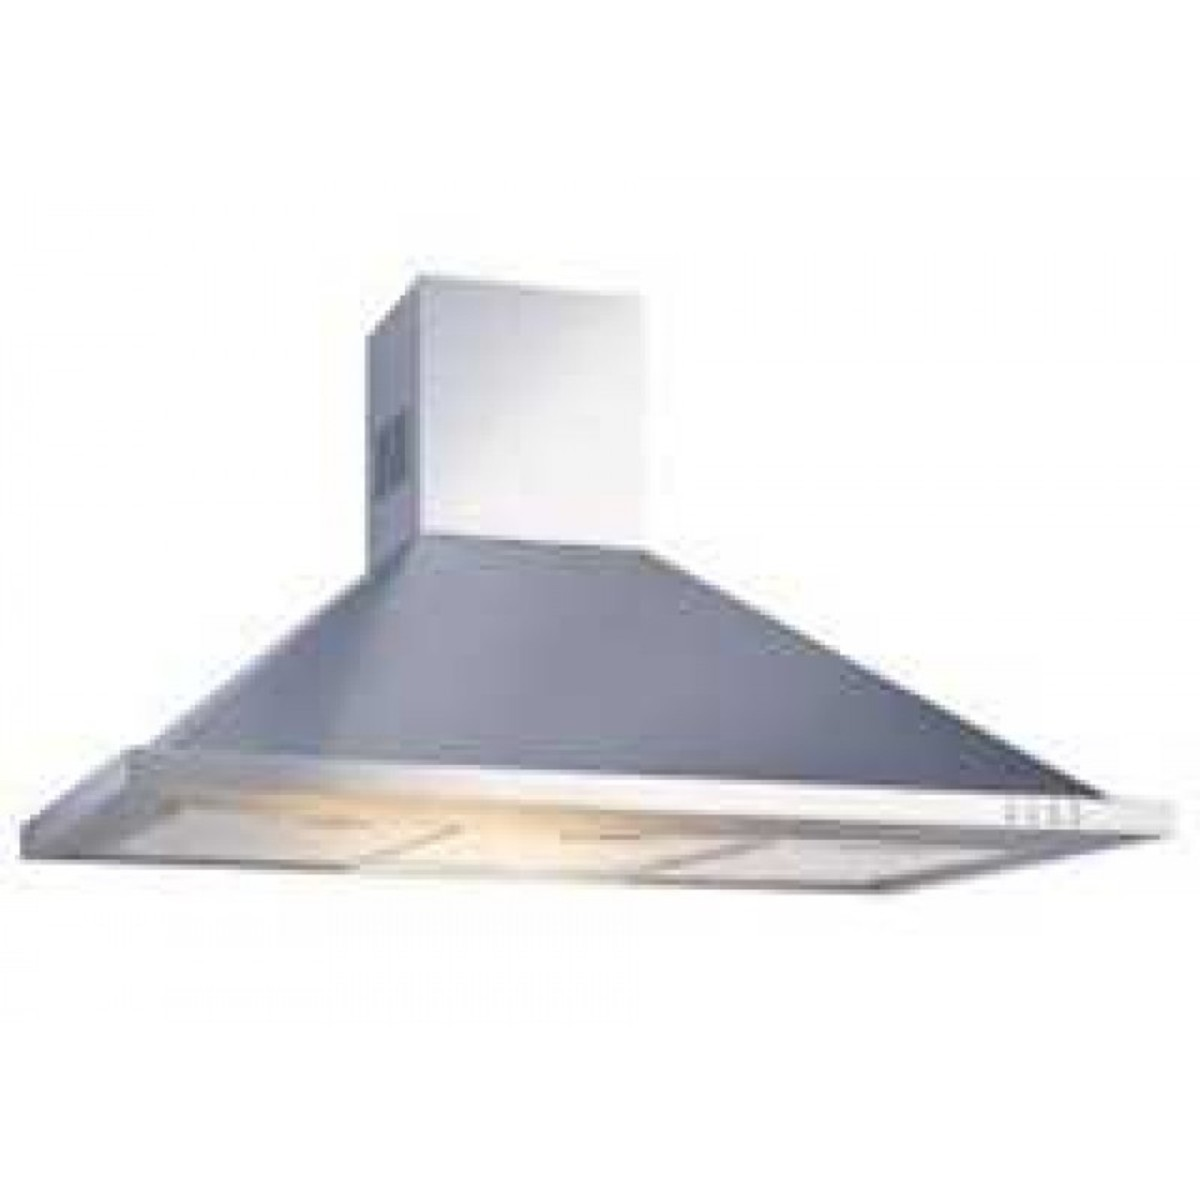 PC900BT 90cm Chimney Hood  Hong Kong Warranty Genuine Products